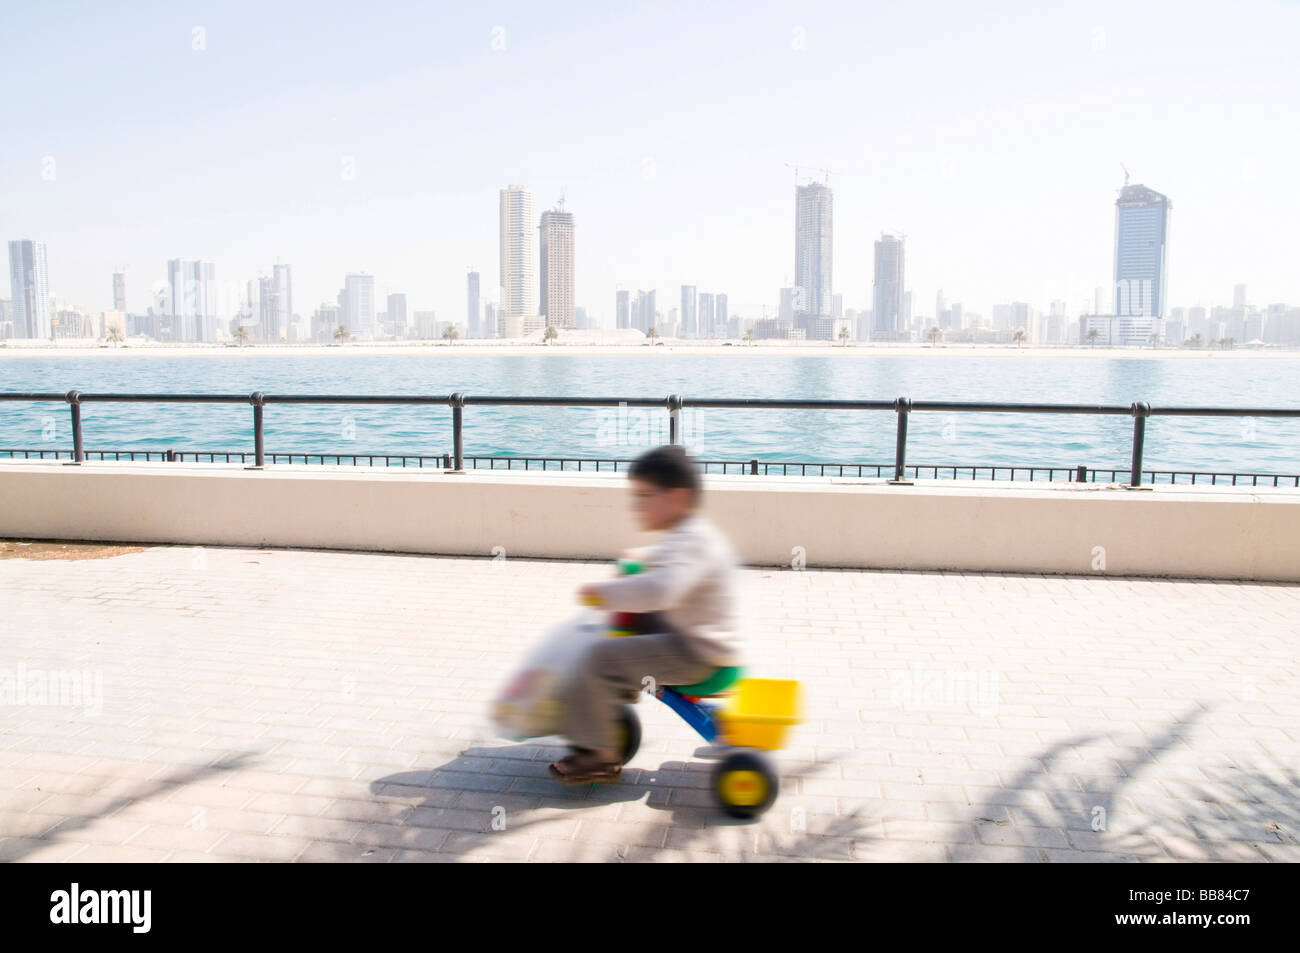 Child on tricyle in front of high rises with motion blur, Dubai, United Arab Emirates - Stock Image